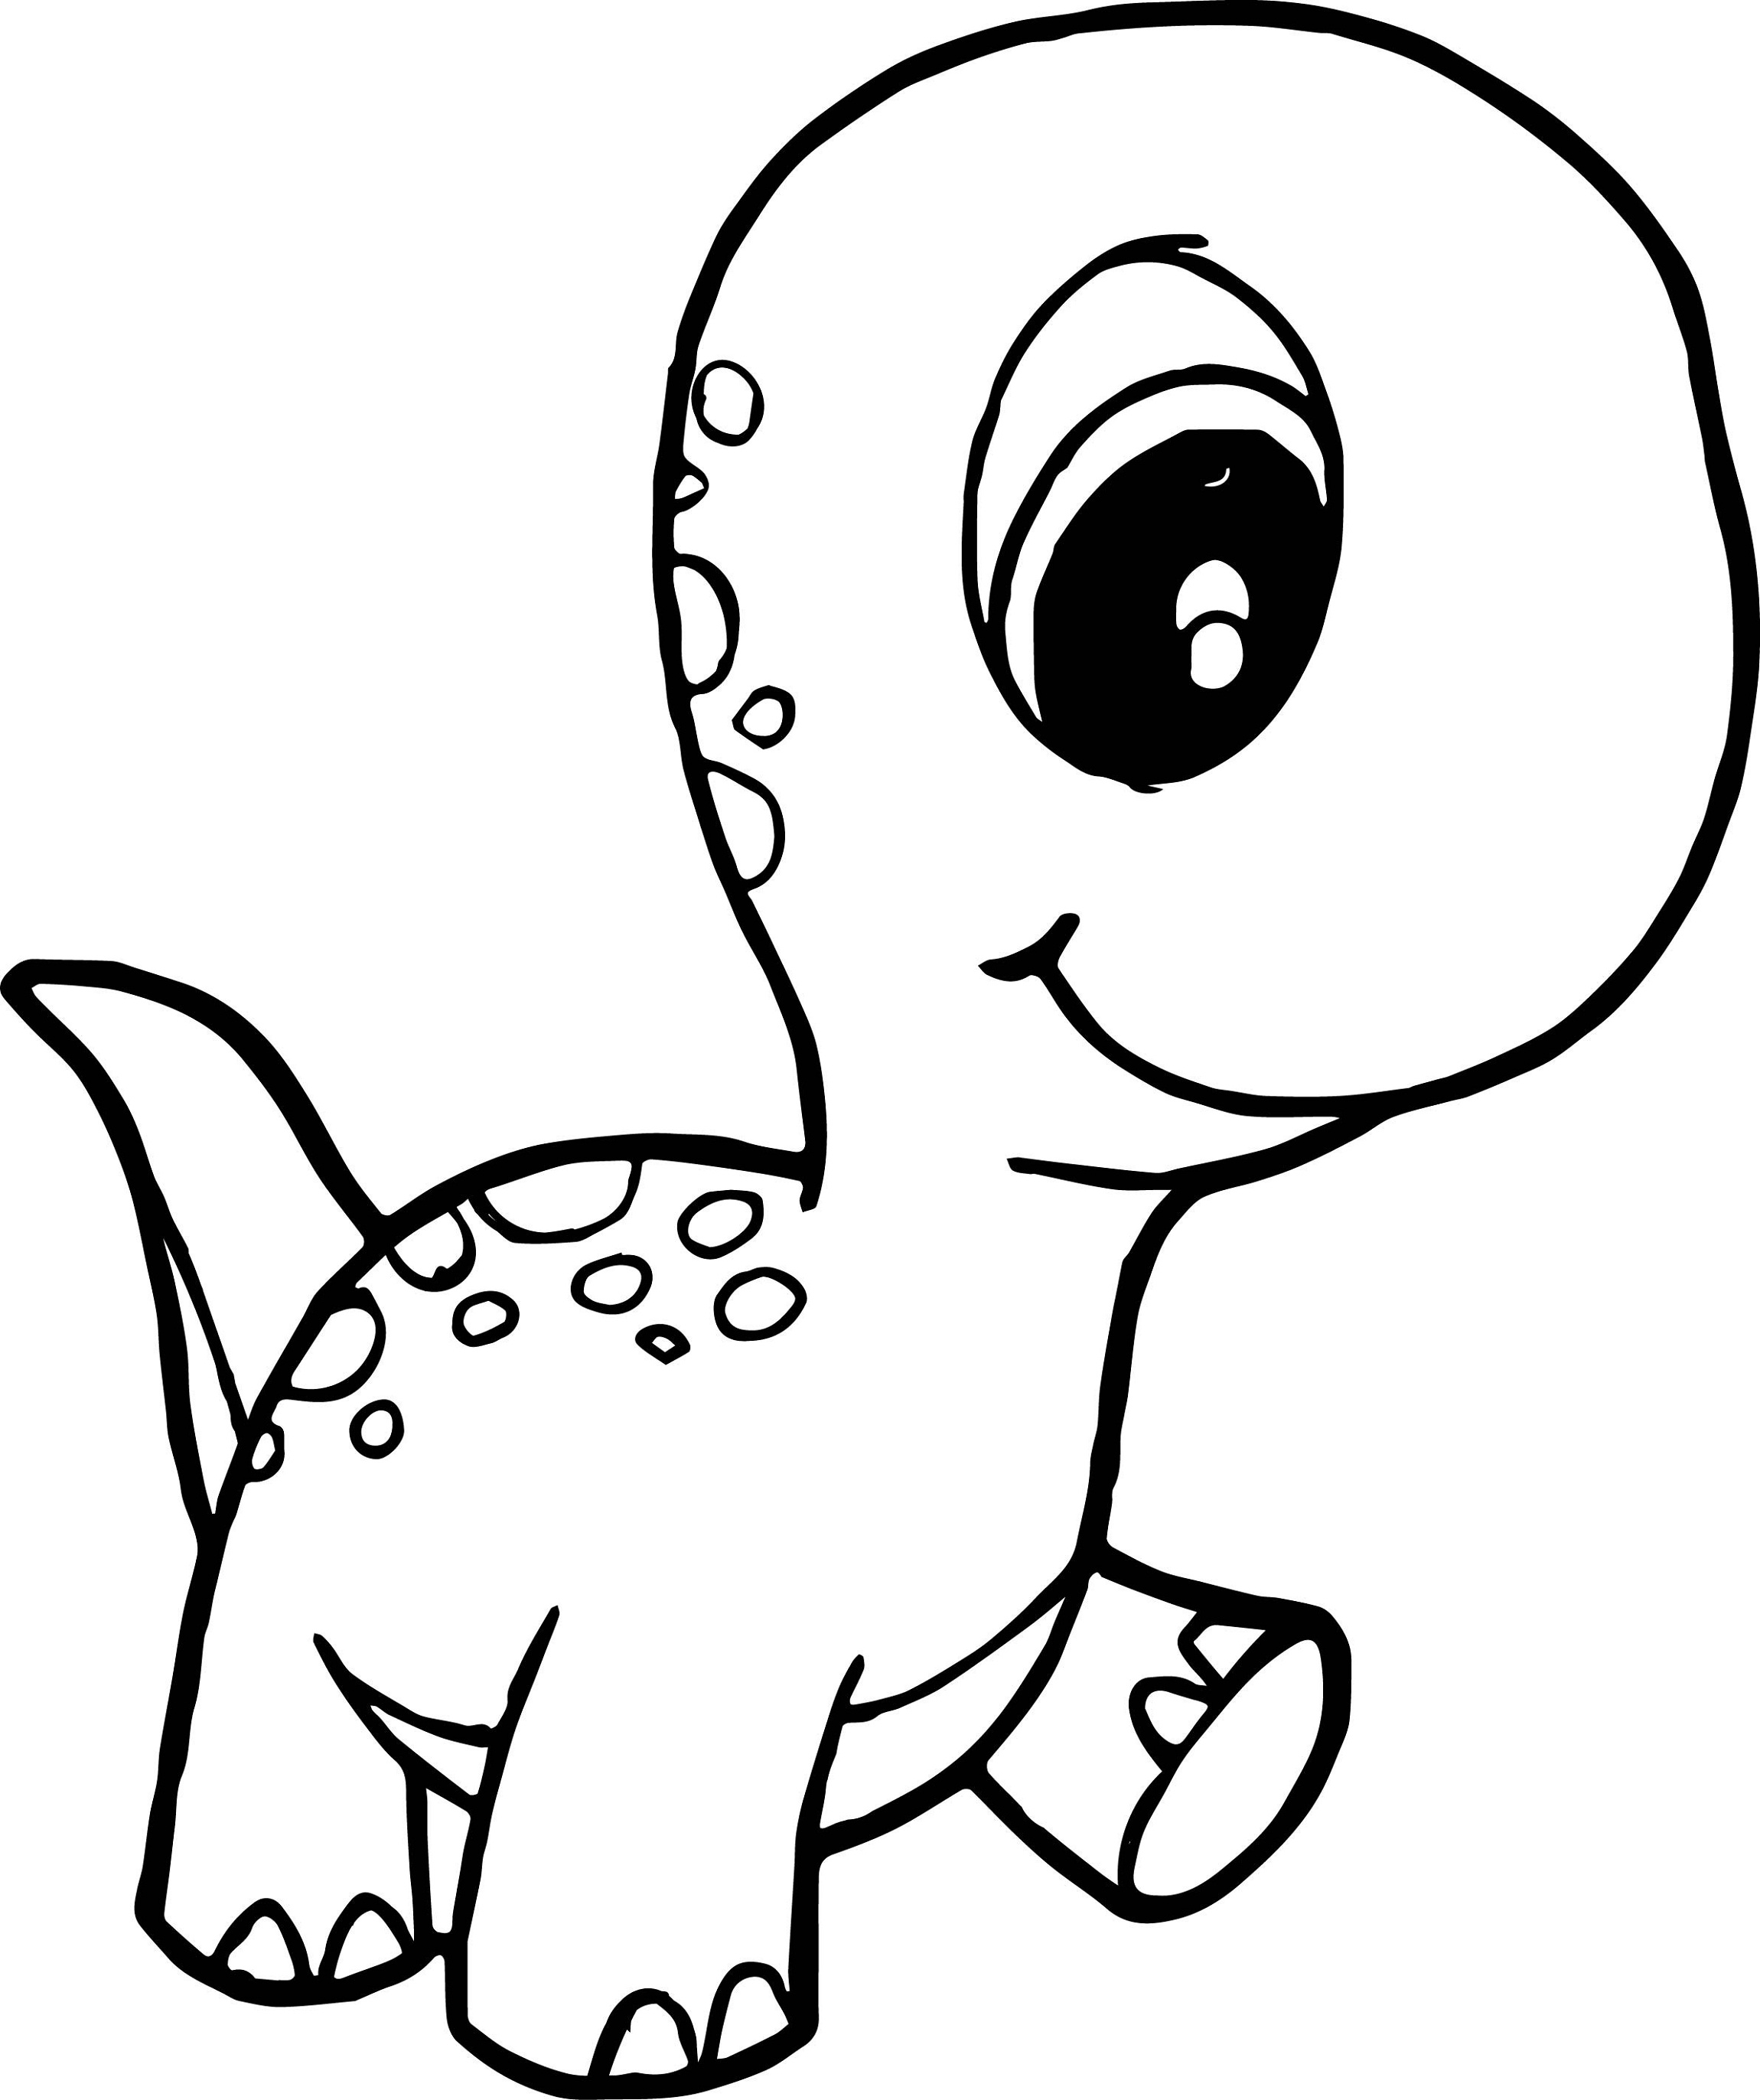 Baby Dinosaur Coloring Pages for